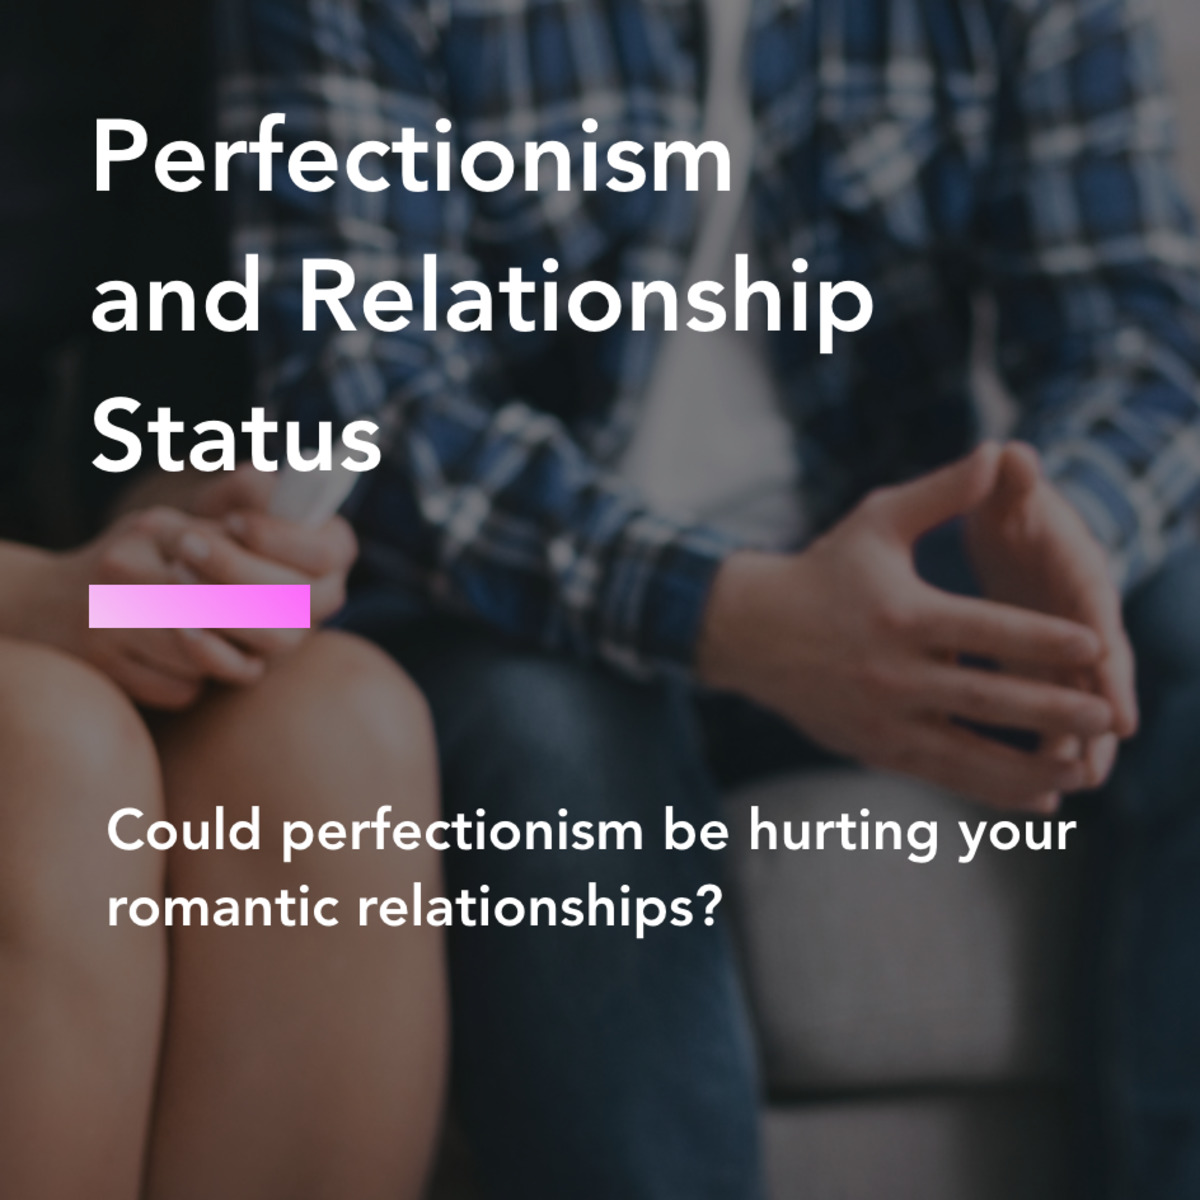 Socially-prescribed perfectionists are 20% more likely to be single than non-perfectionists.